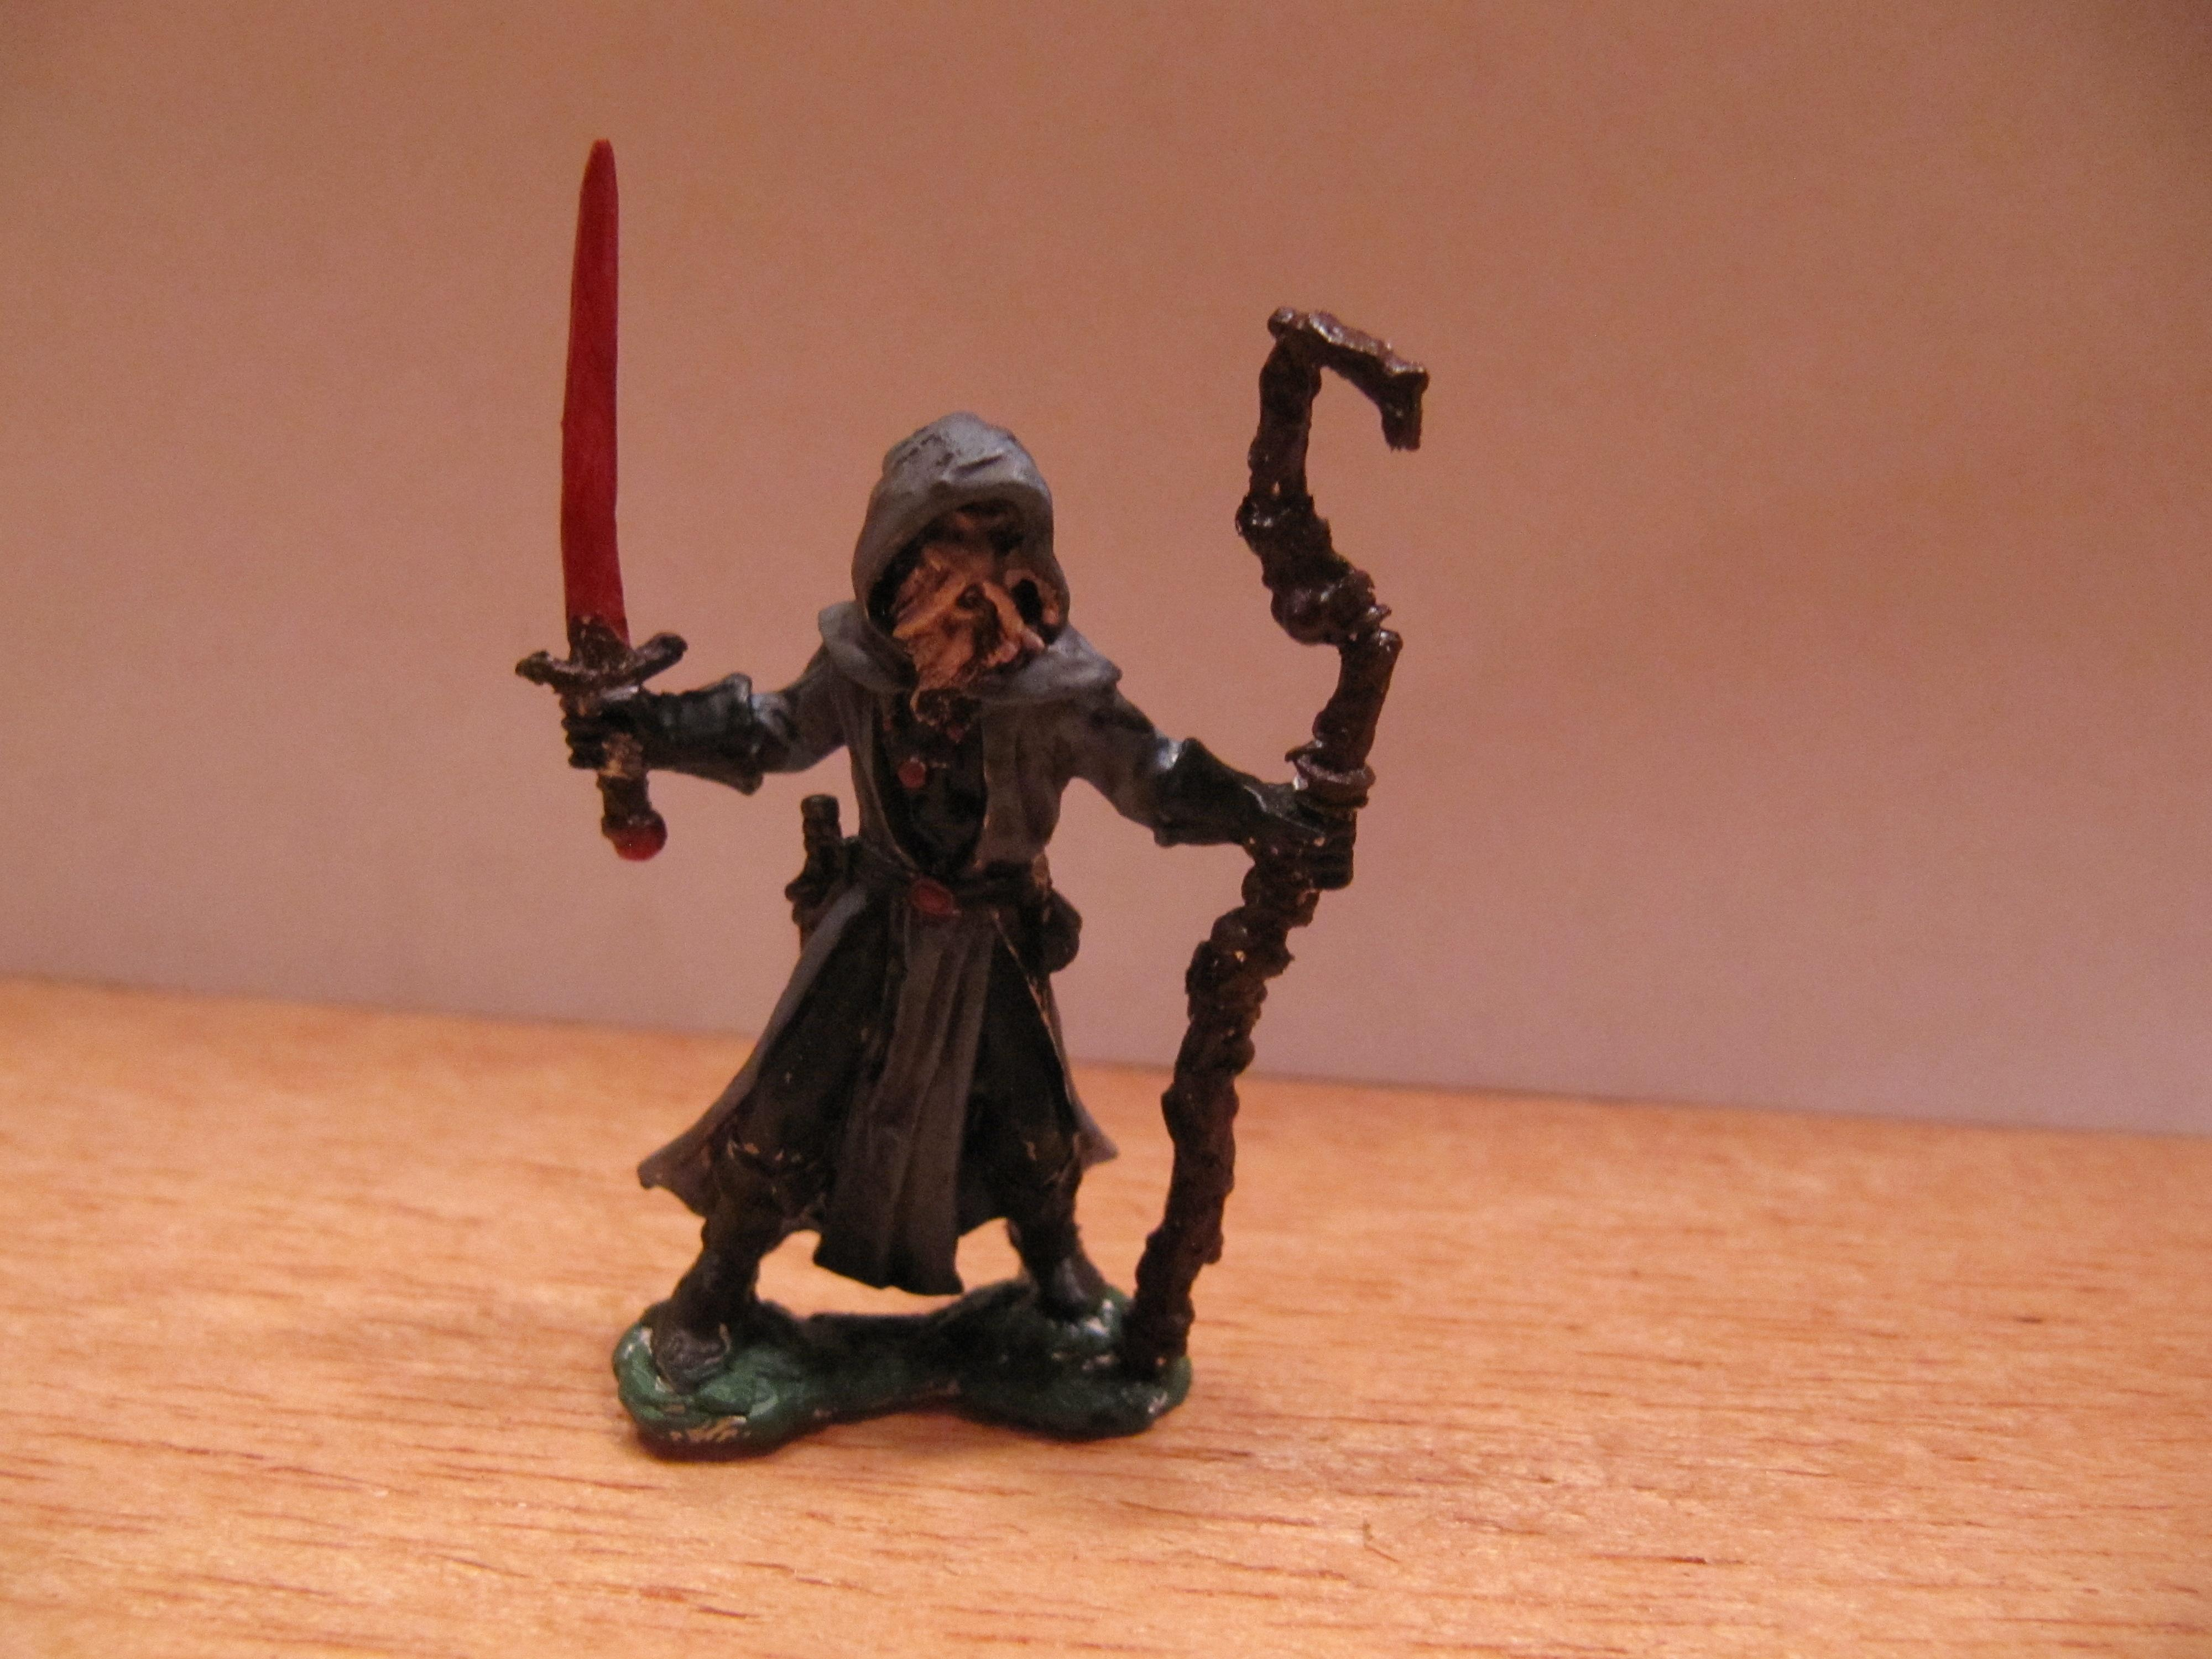 Madusa, Miniatures, Models, Test, Test Miniatures, Test Models, Wizard